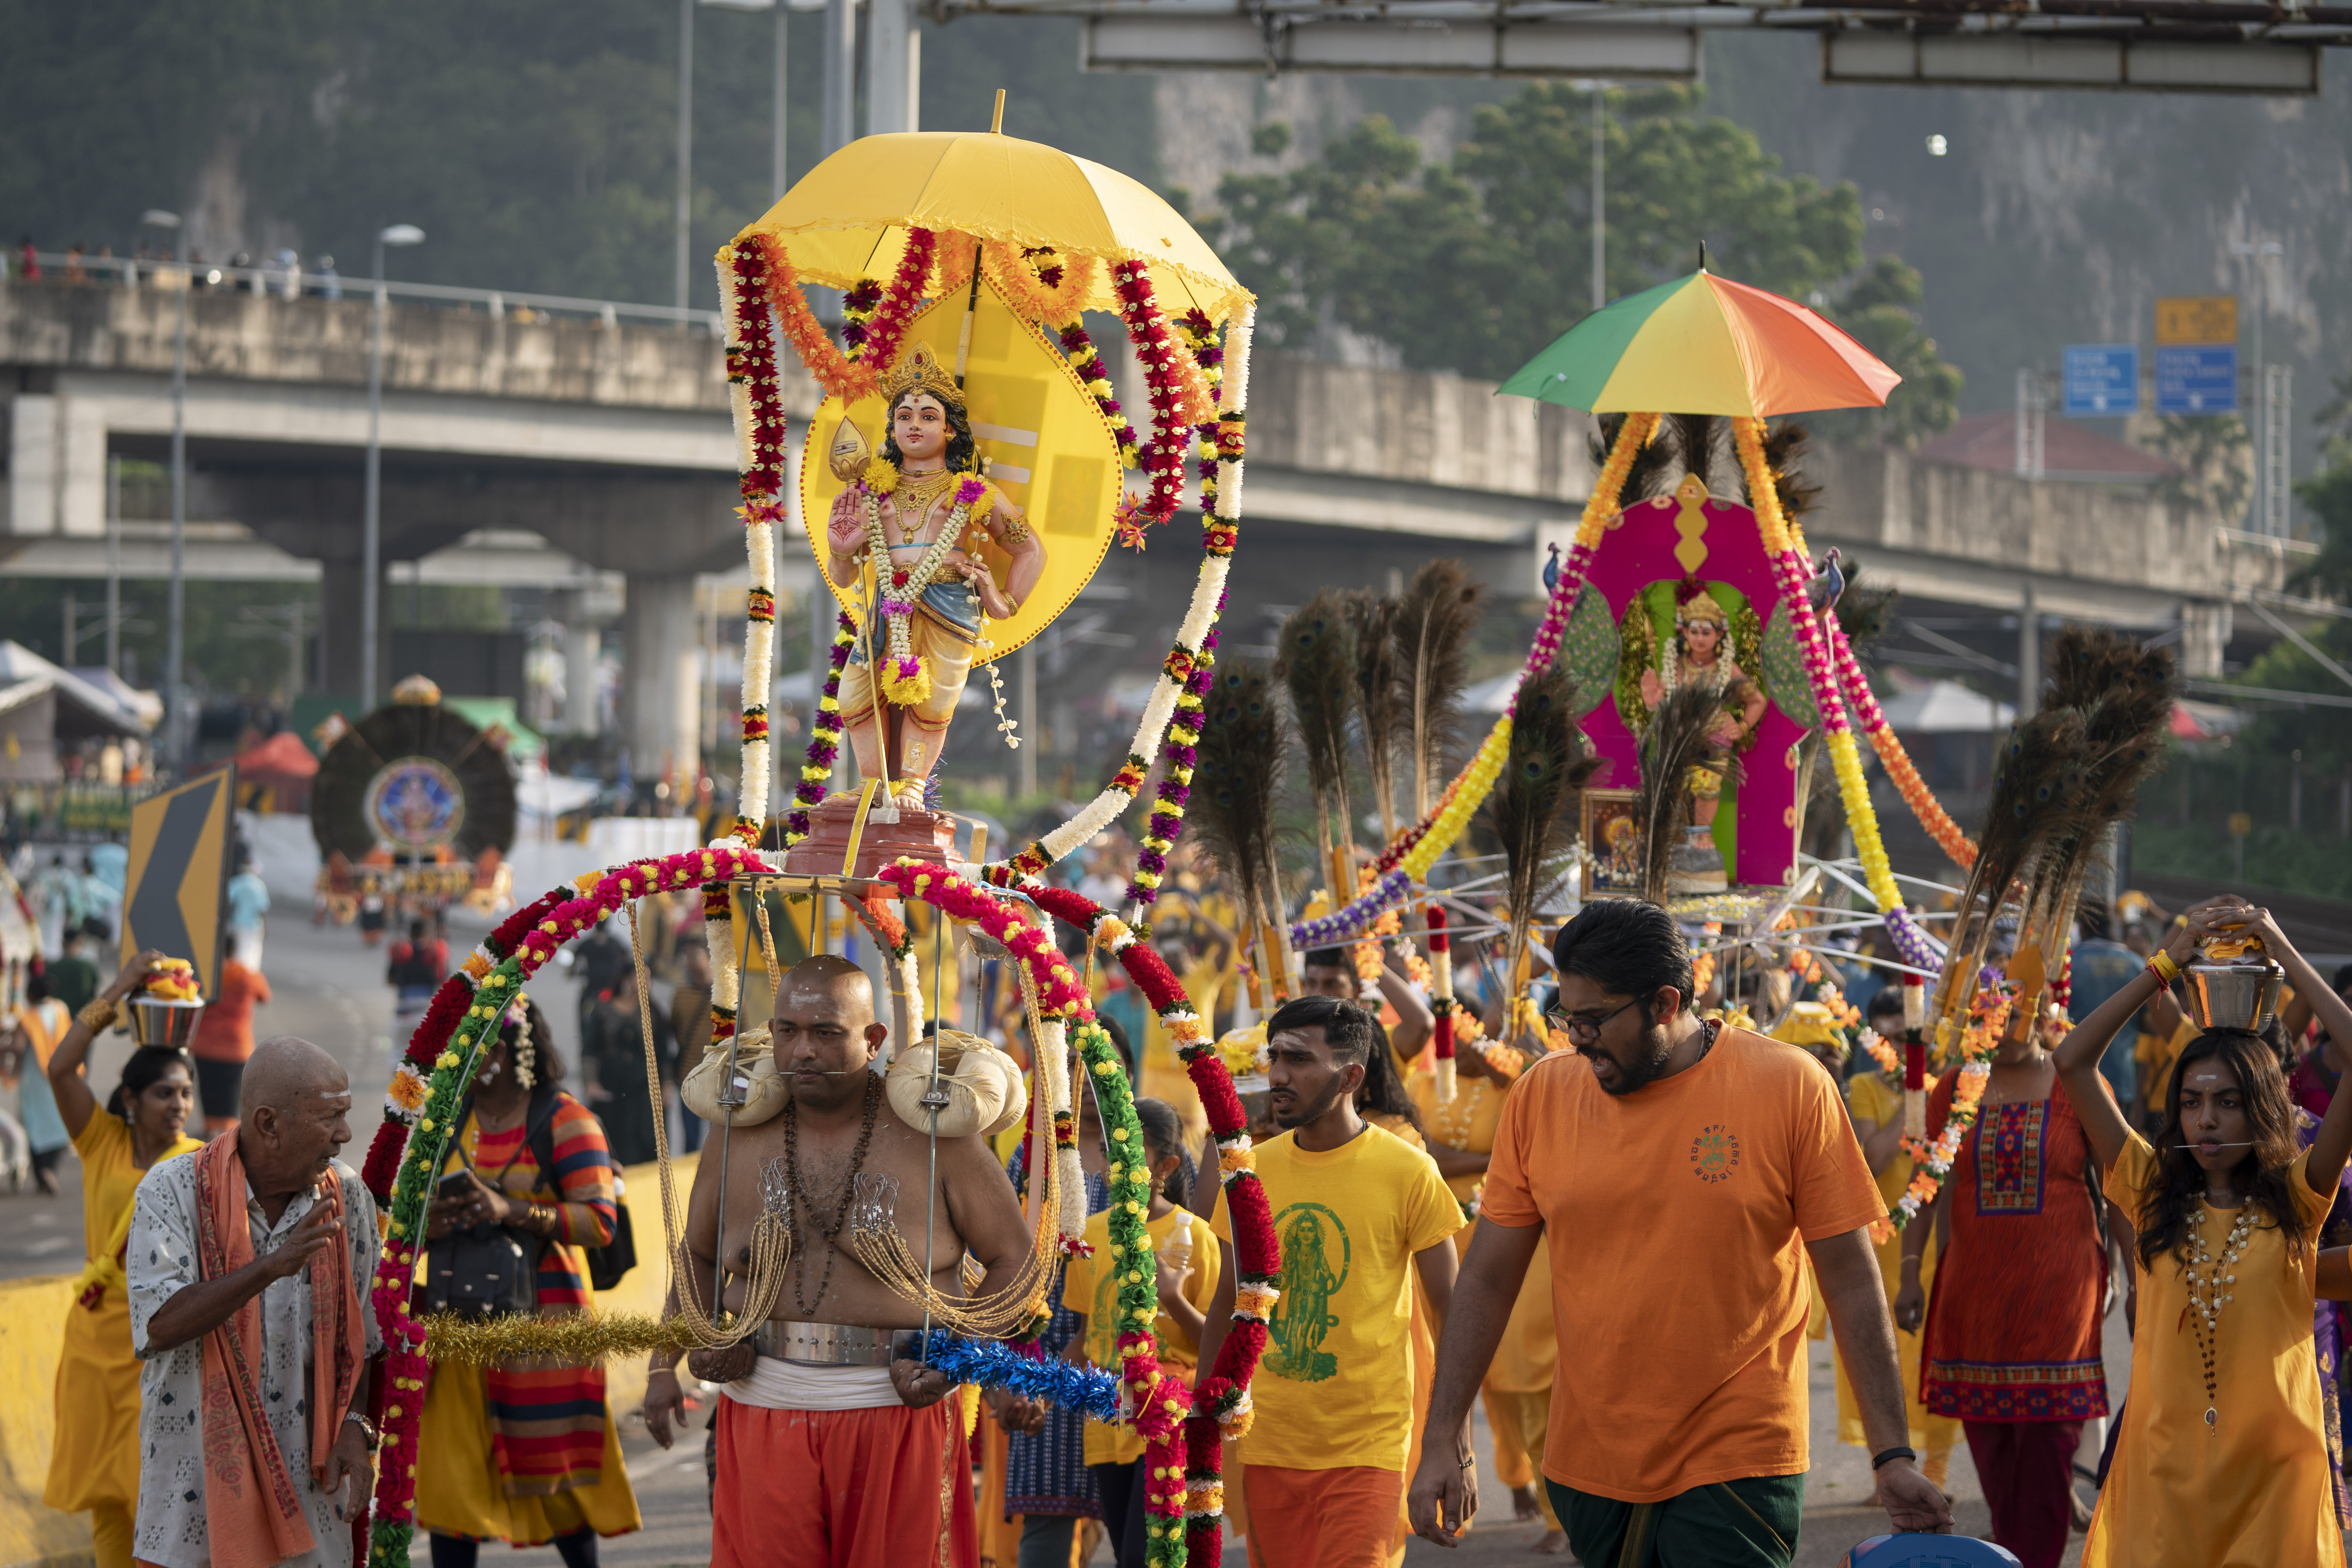 Giant Kavadi offering cages are carried by Hindu devotees in a procession during the Thaipusam festival at Batu Caves, outskirts of Kuala Lumpur, Saturday, Feb. 8, 2020. Thaipusam, which is celebrated in honor of Hindu god Lord Murugan, is an annual procession by Hindu devotees seeking blessings, fulfilling vows and offering thanks. (AP Photo/Vincent Thian)